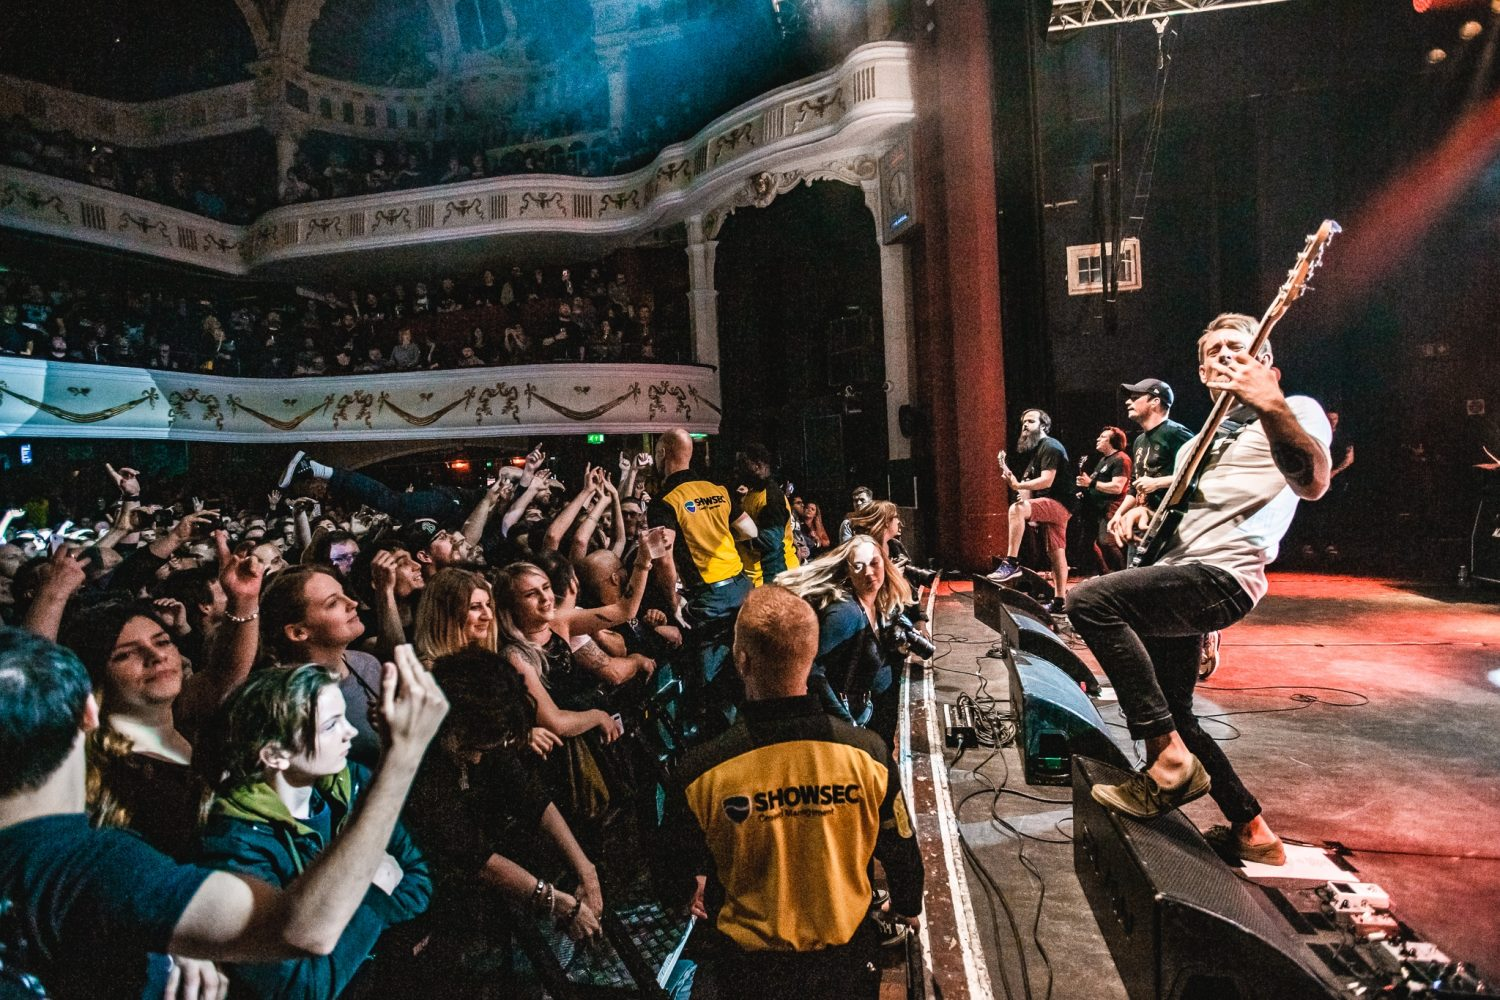 Funeral For A Friend hit London's O2 Shepherd's Bush Empire, and it looked like this